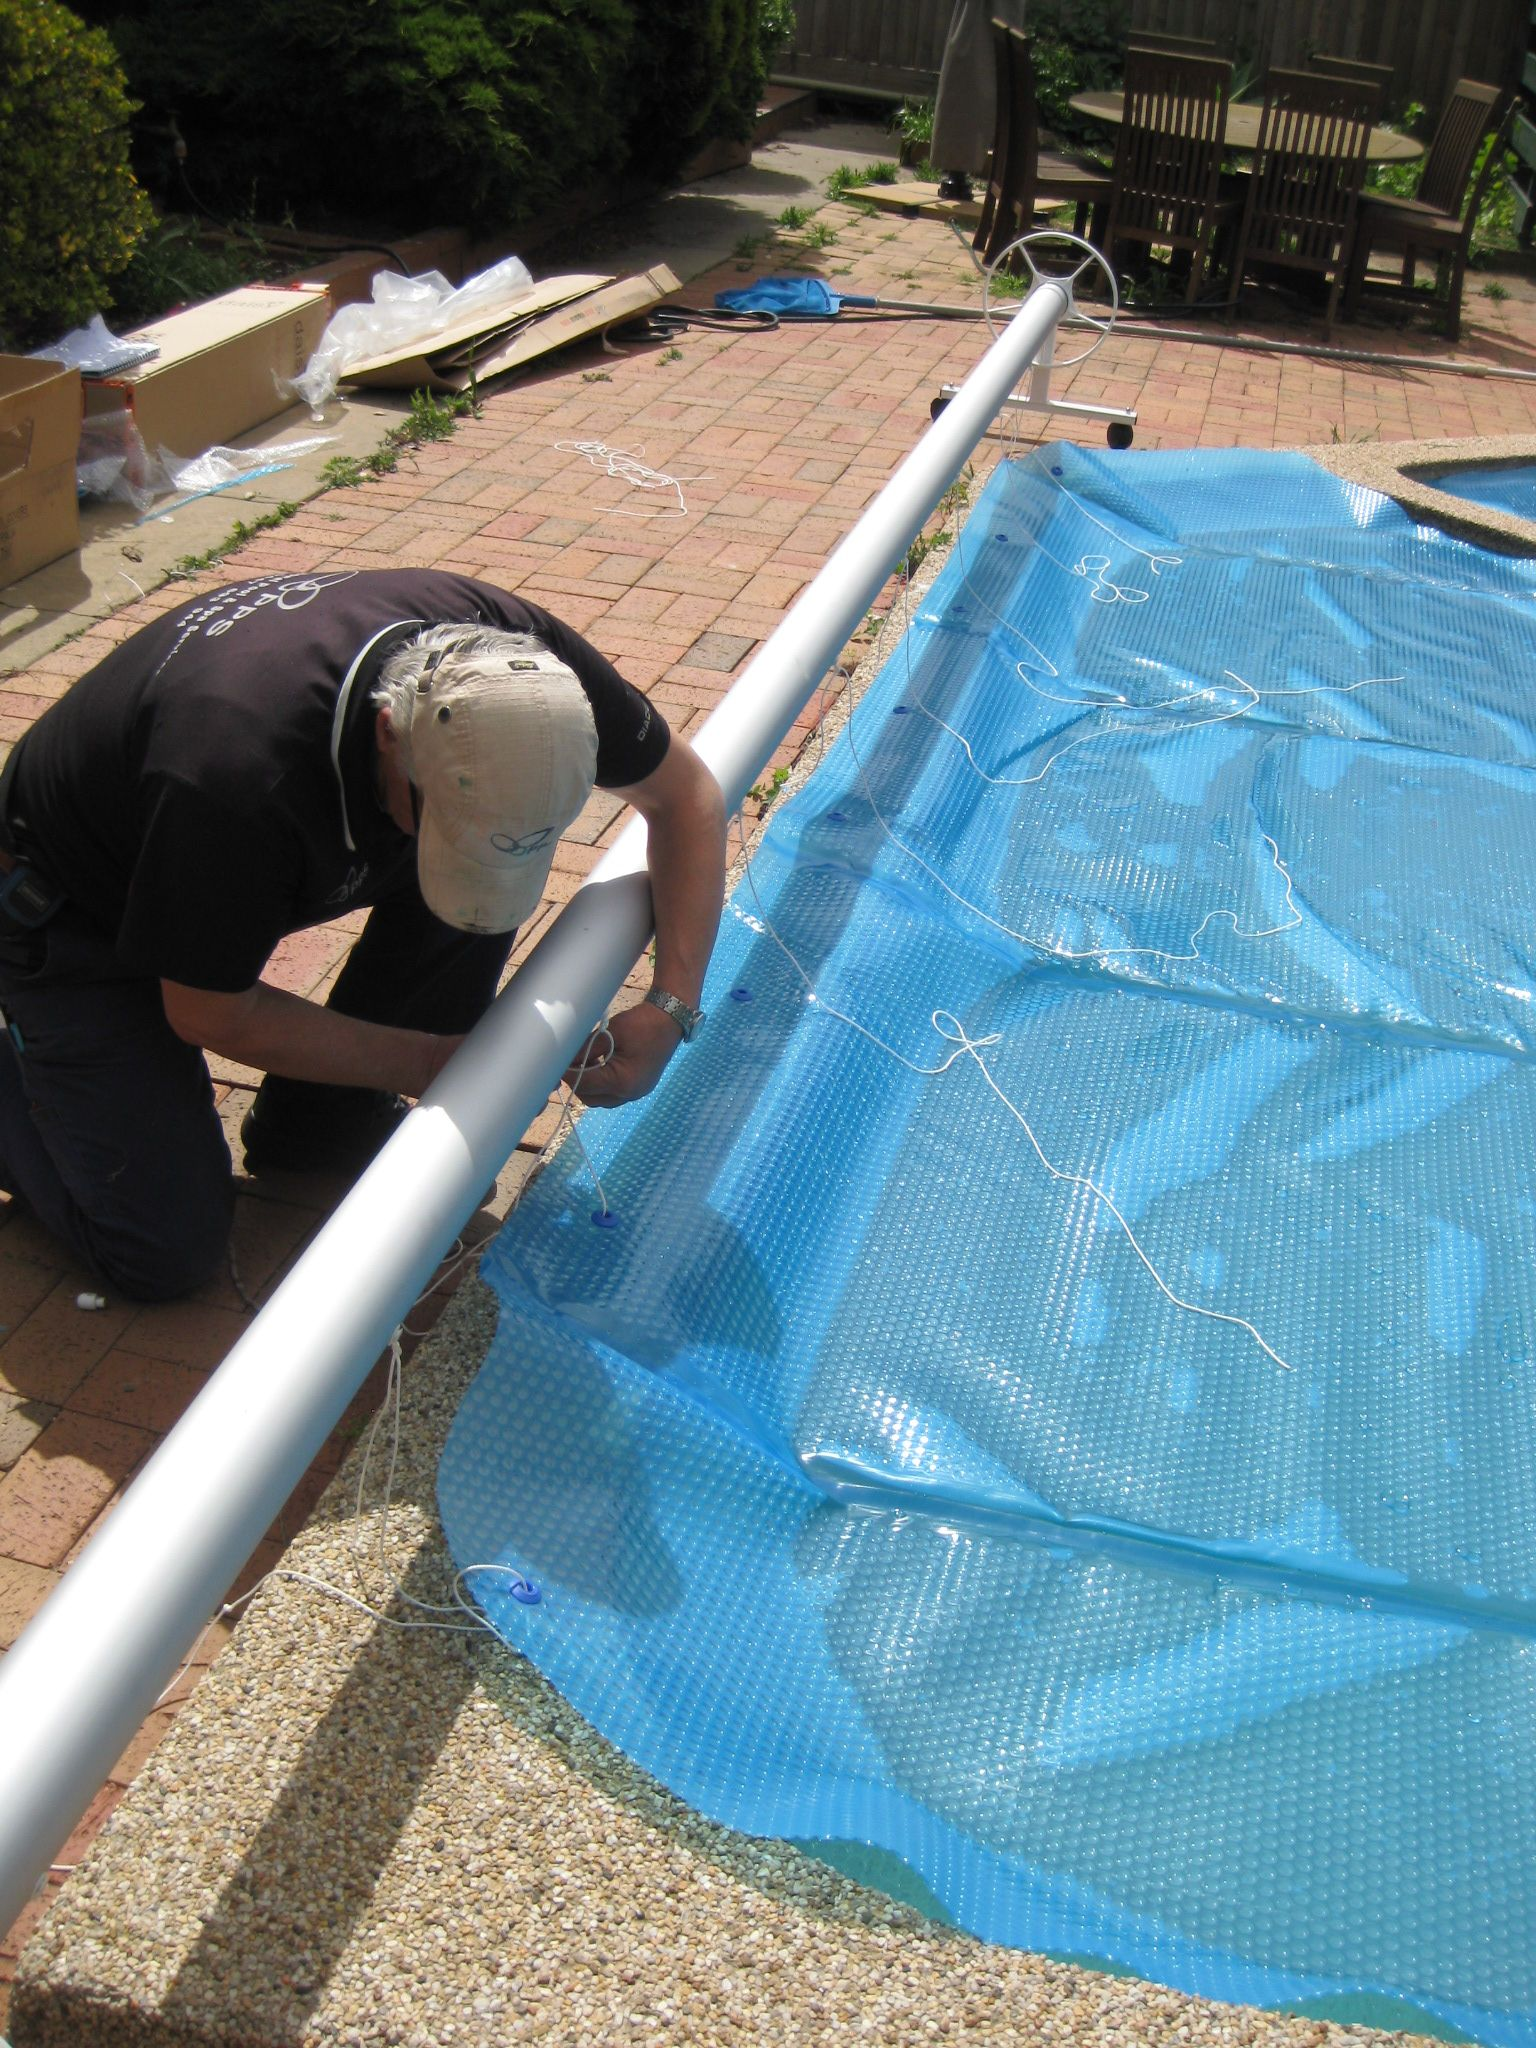 Attach Pool Cover To Reel Pools Inground Pool Covers